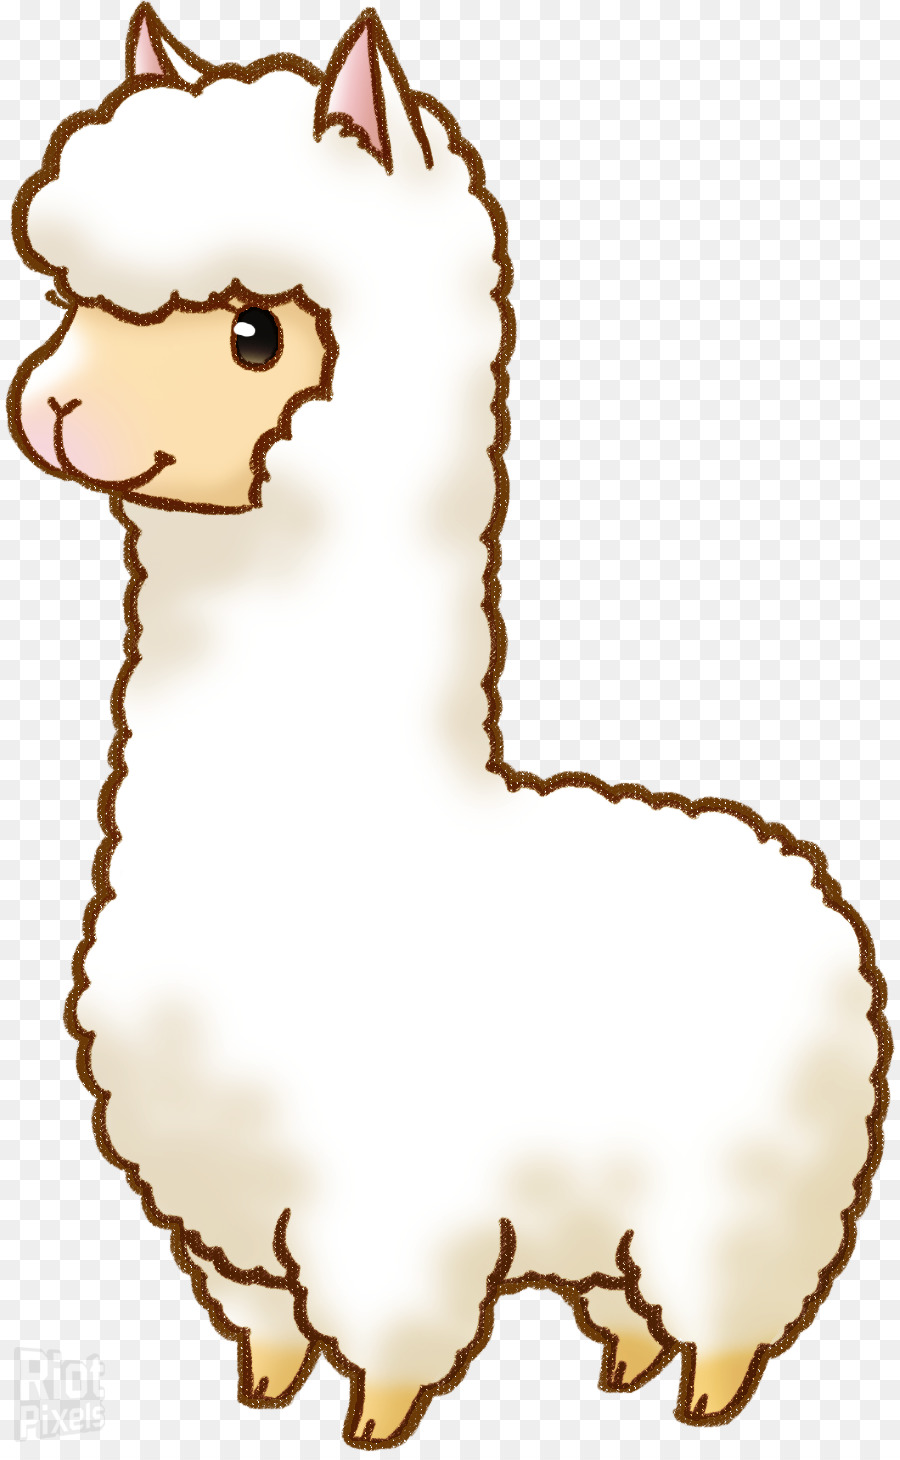 llama alpaca drawing cartoon clip art alpaca png download 892 rh kisspng com alpaca background clipart Funny Alpacas